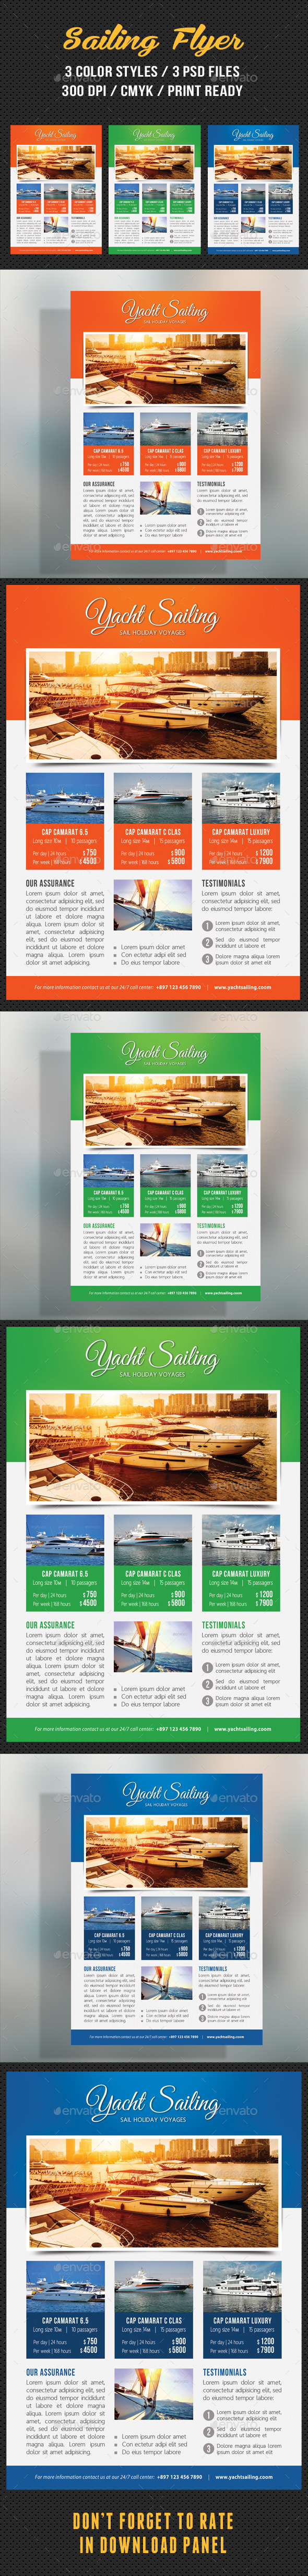 Sailing Yacht Travel Flyer 03 - Corporate Flyers